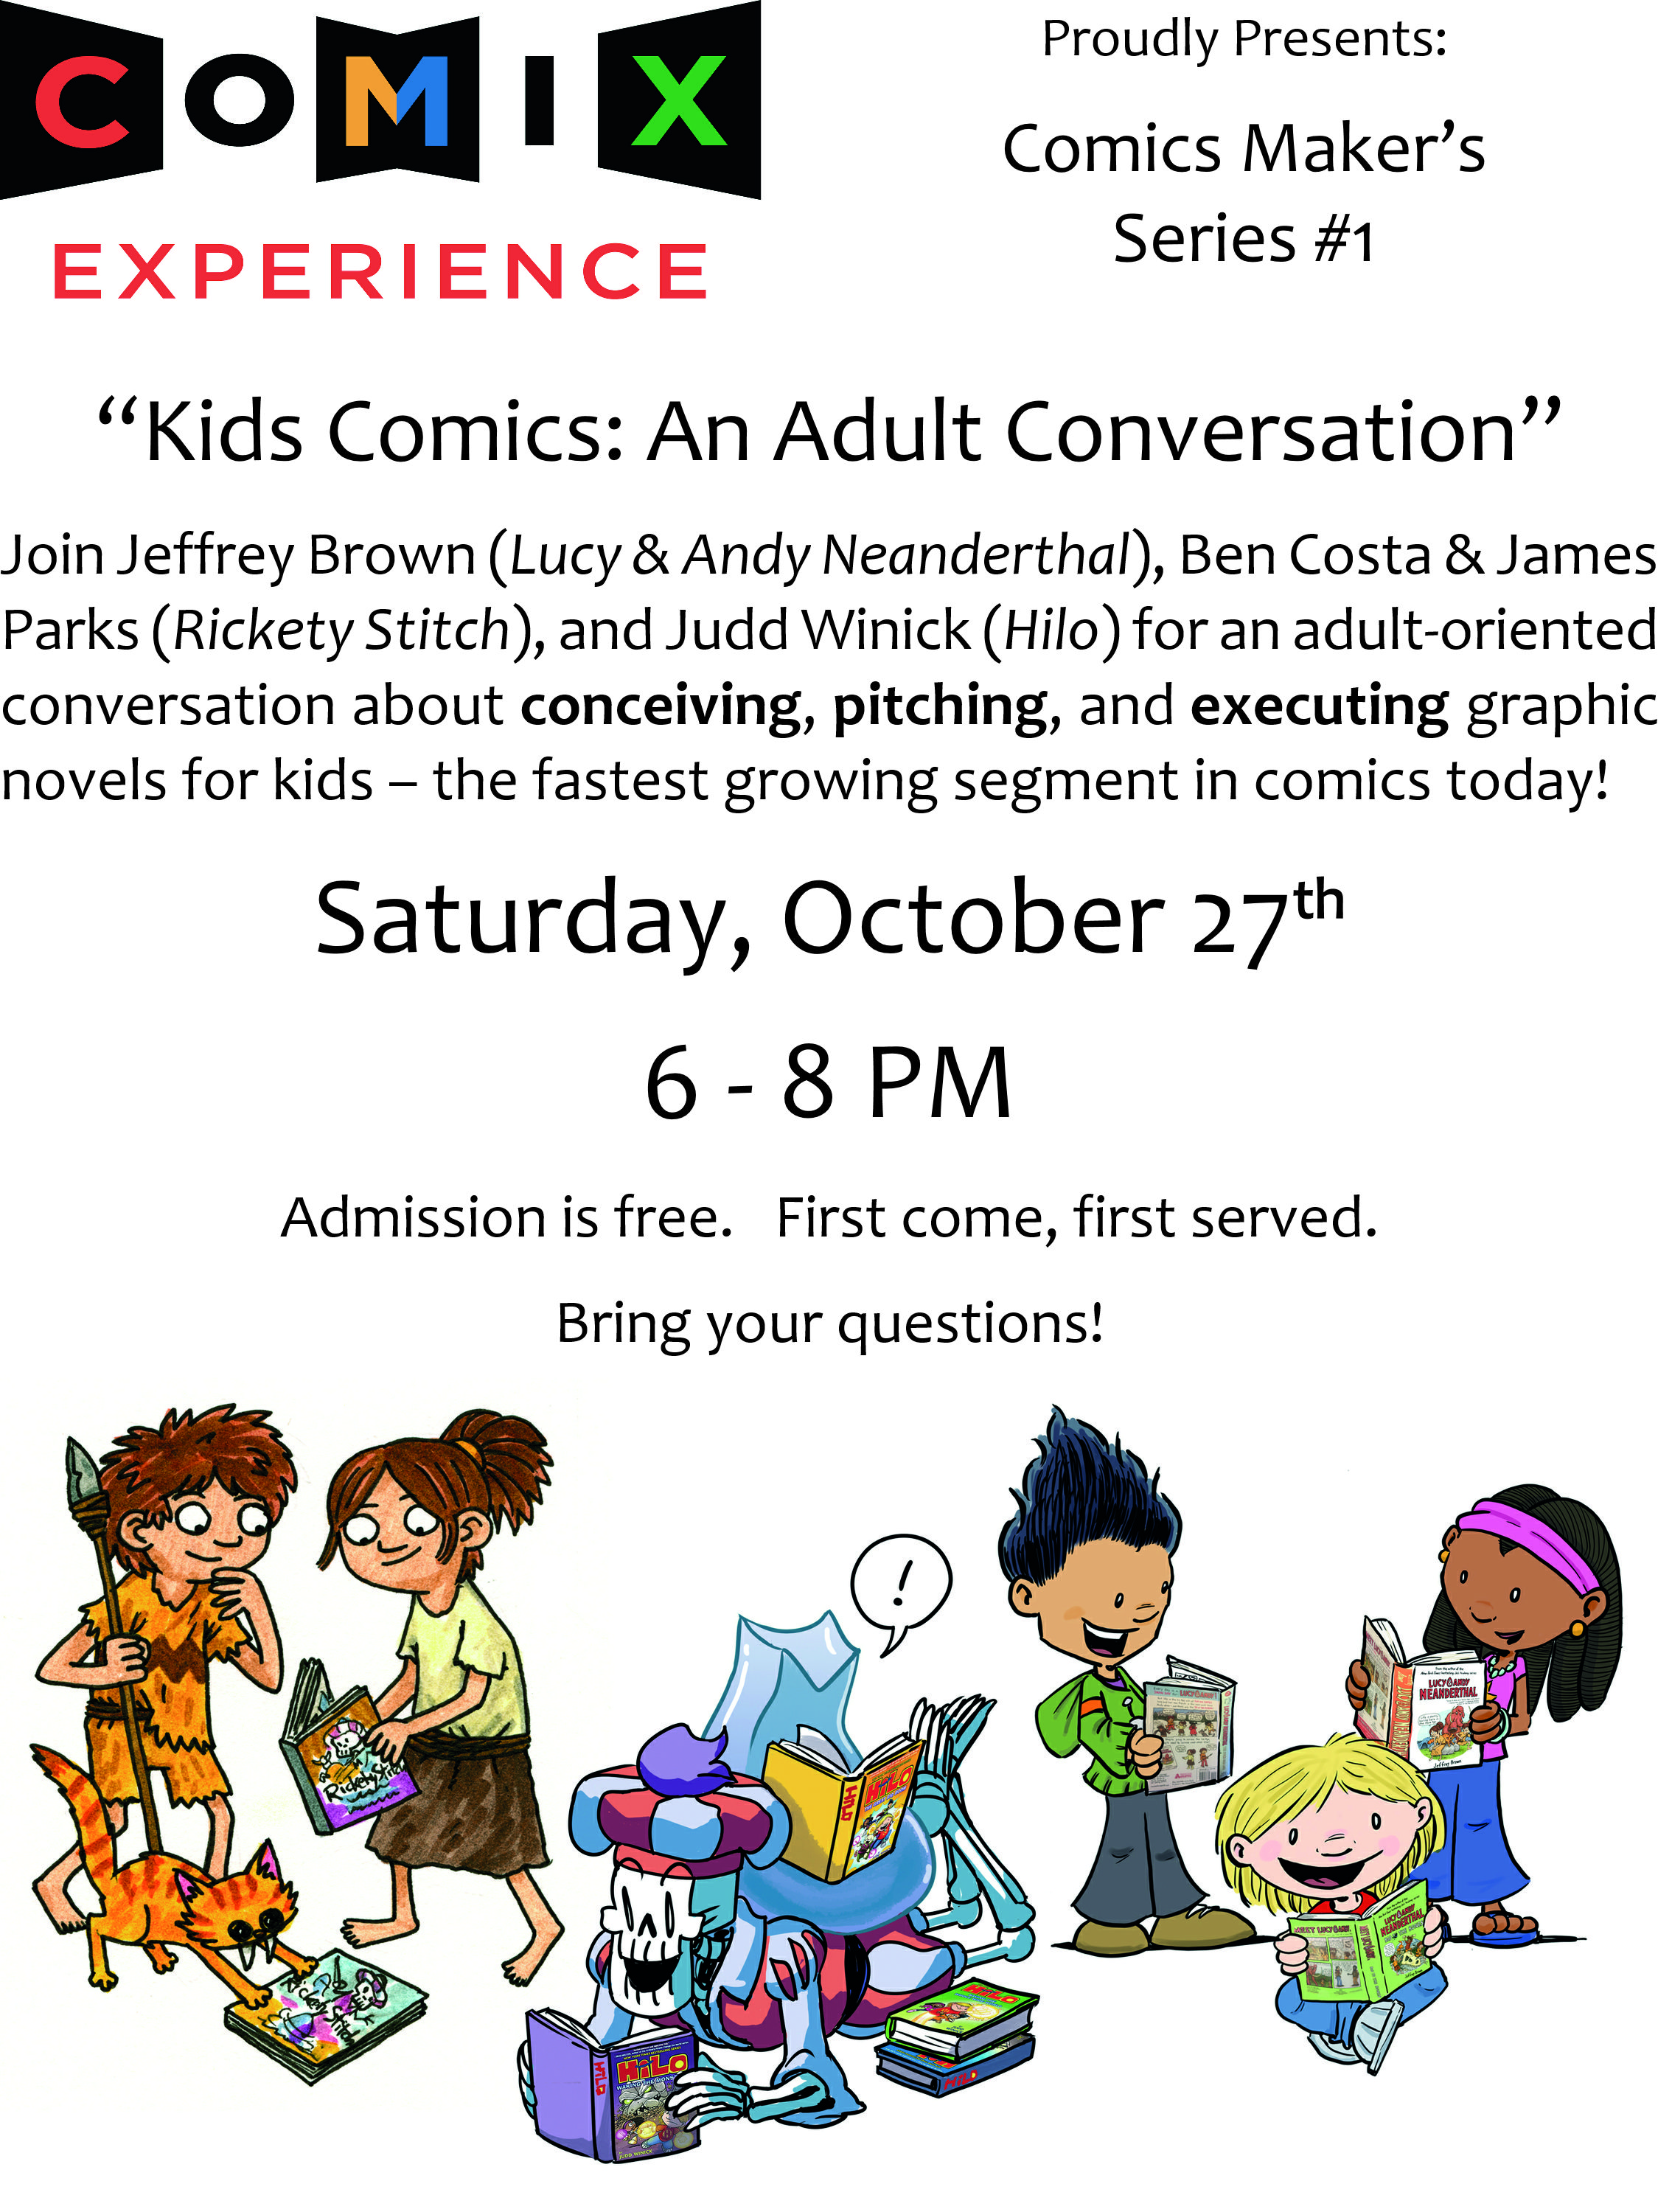 Adult Cartoon Comics kids comics: an adult conversation — comix experience